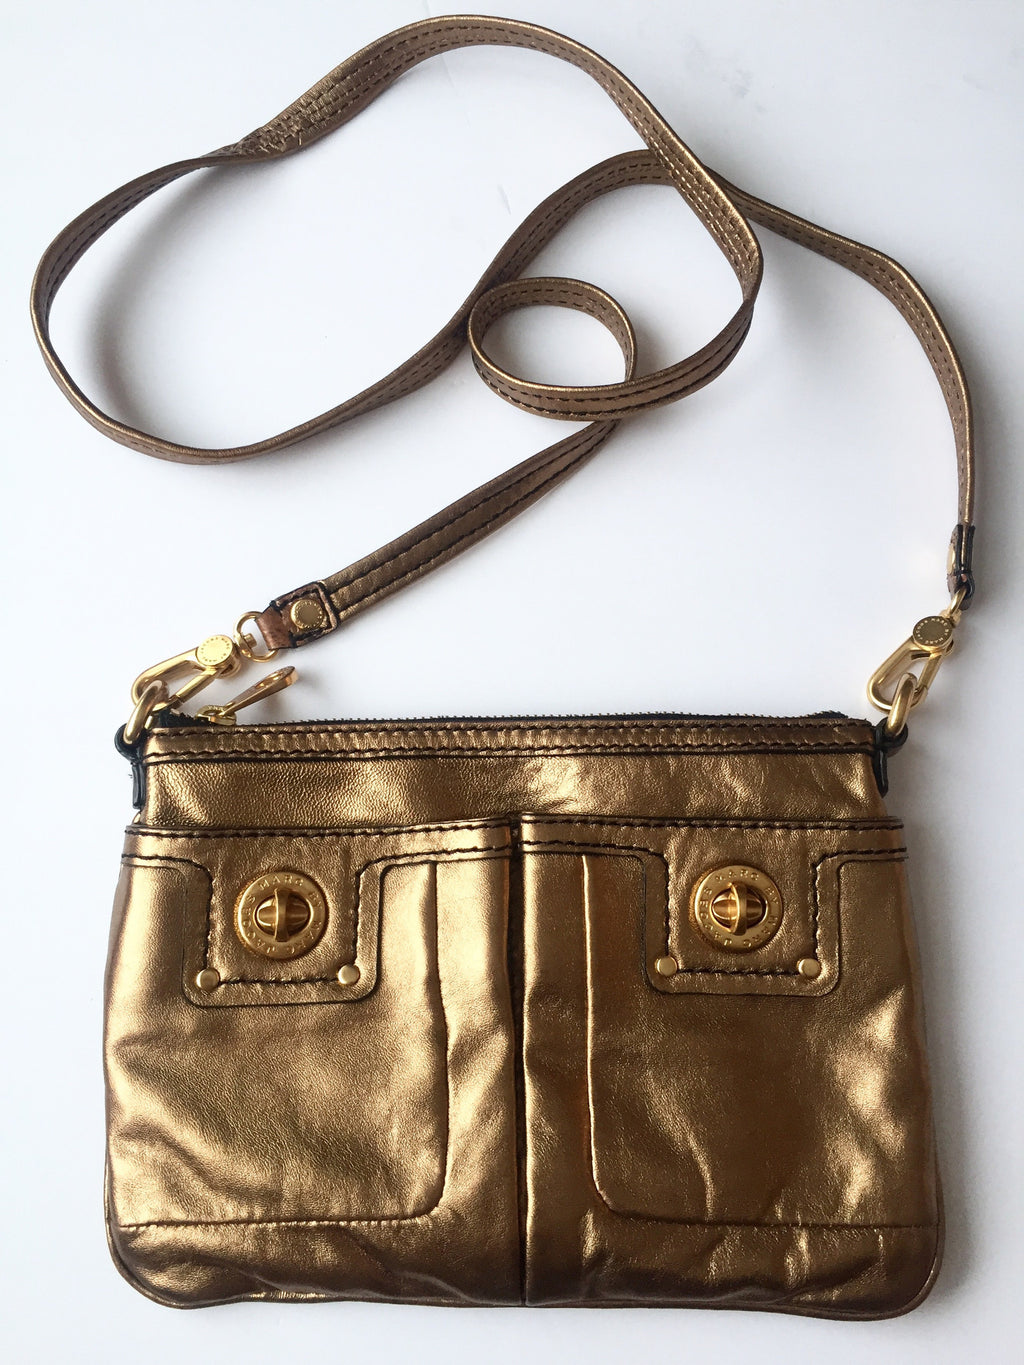 Marc by Marc Jacob Metallic Gold Cross-Body Bag